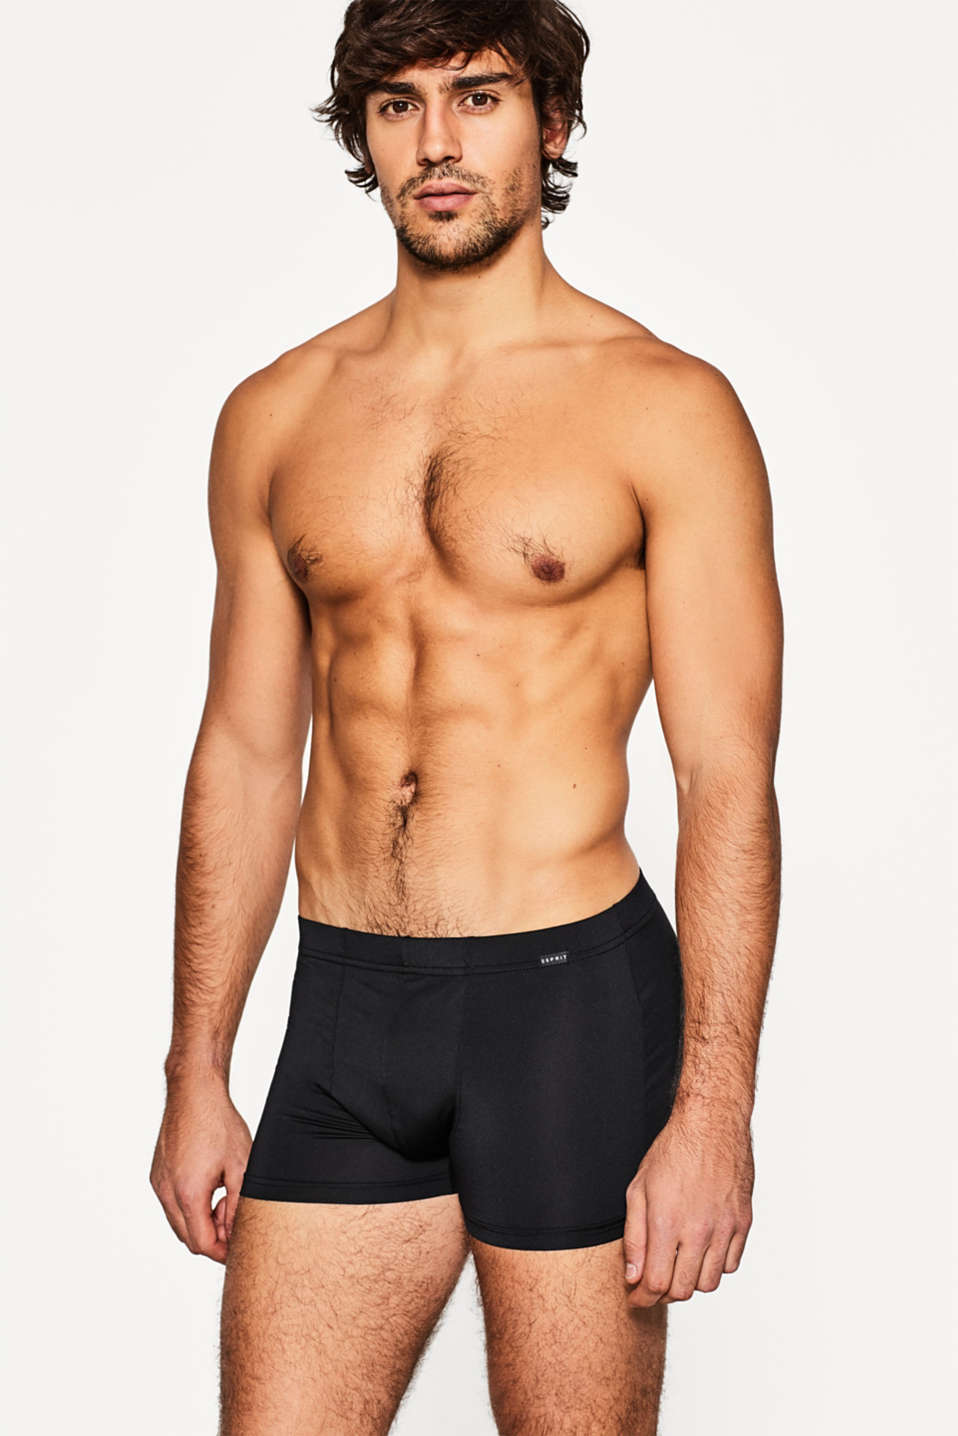 Esprit - Set van 2 shorts van microvezel met stretch